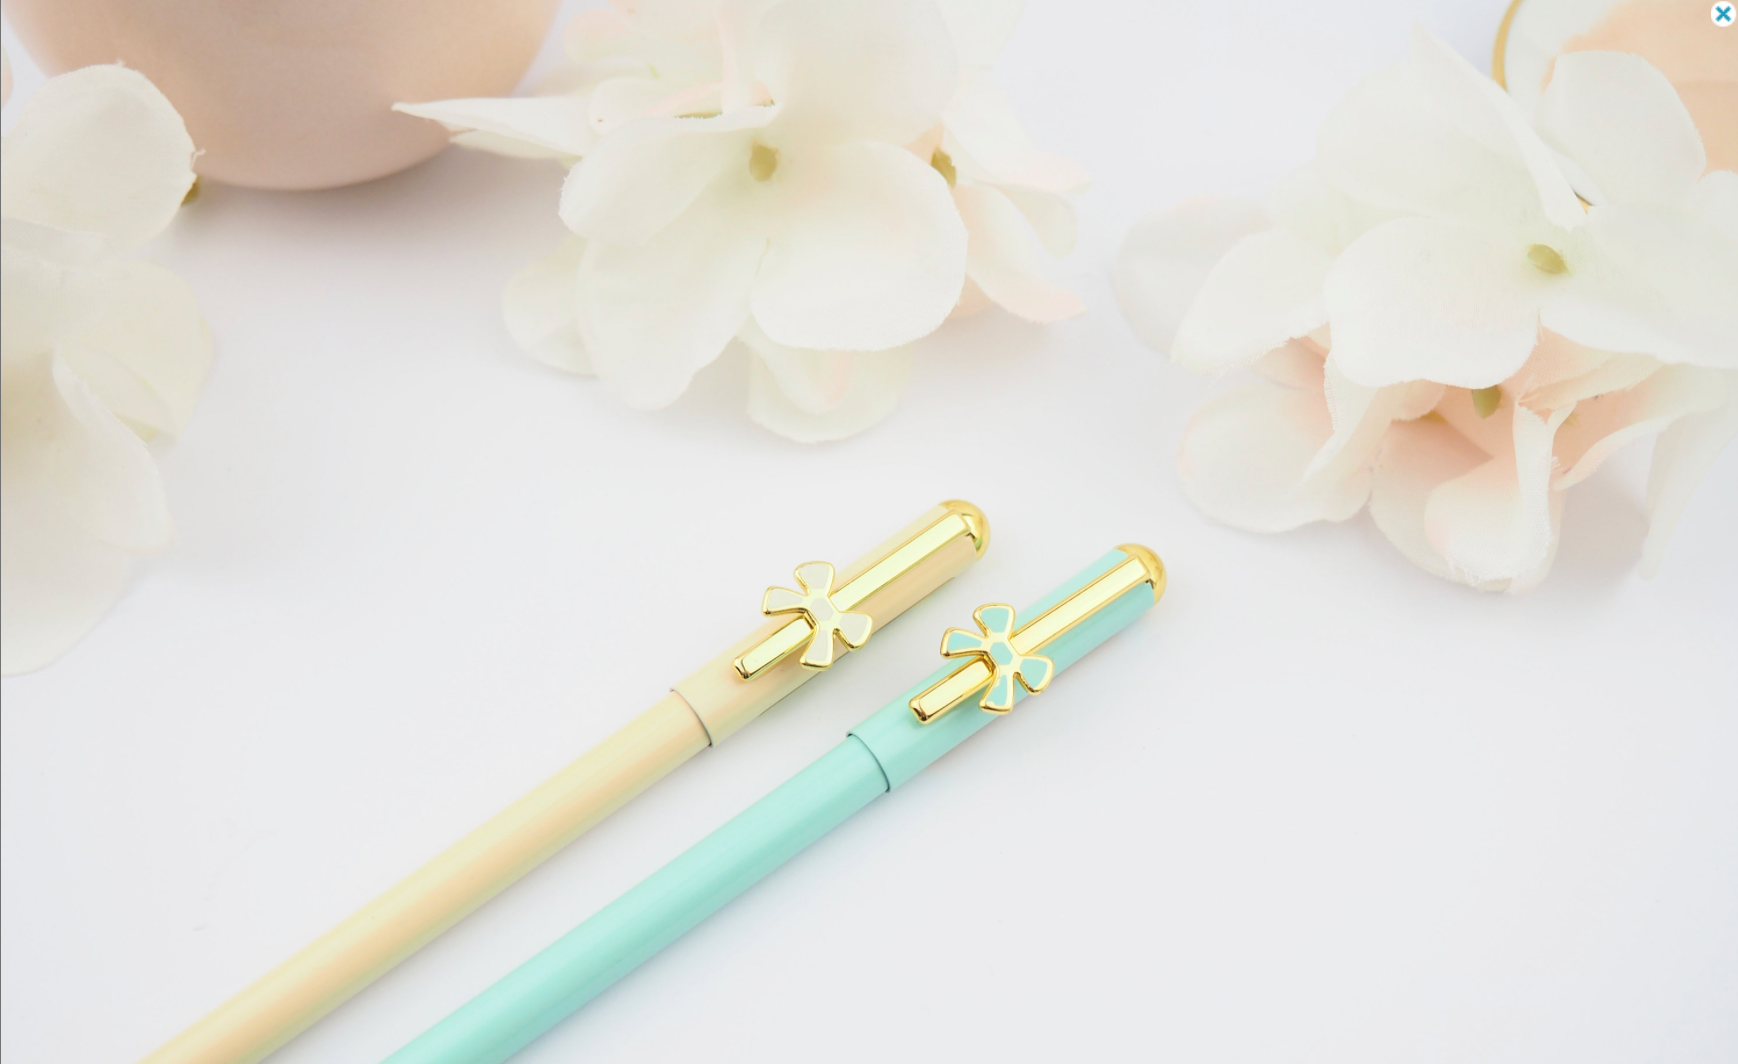 Pastal Bow Pen in Teal